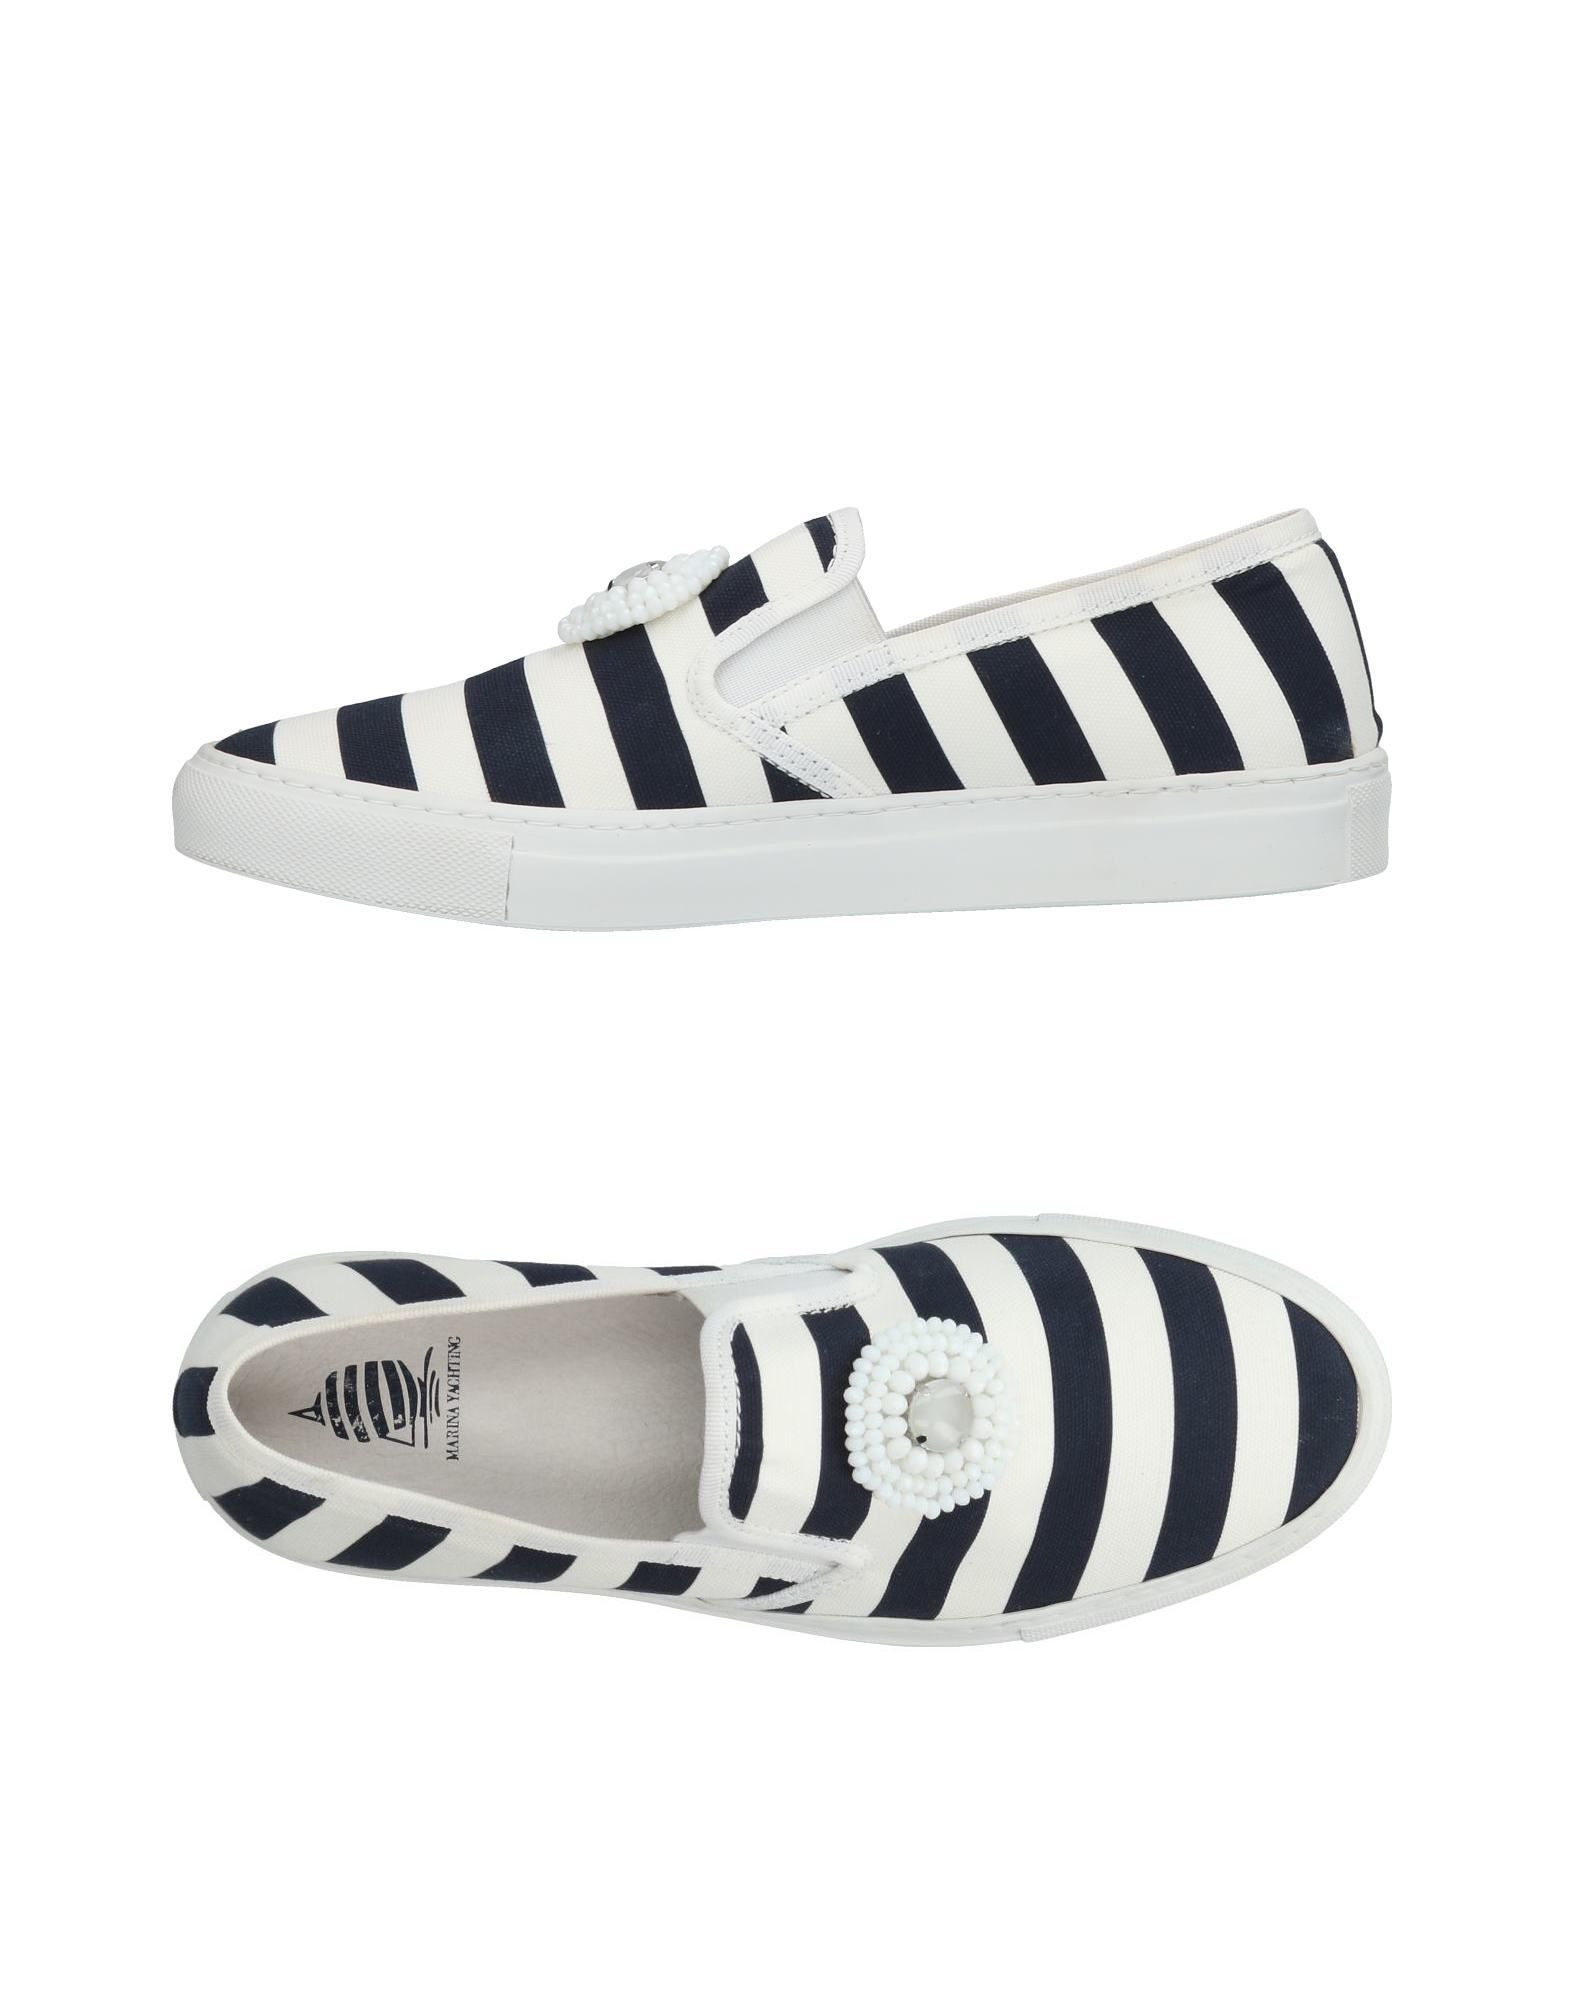 Sneakers Marina Yachting Donna - Acquista online su